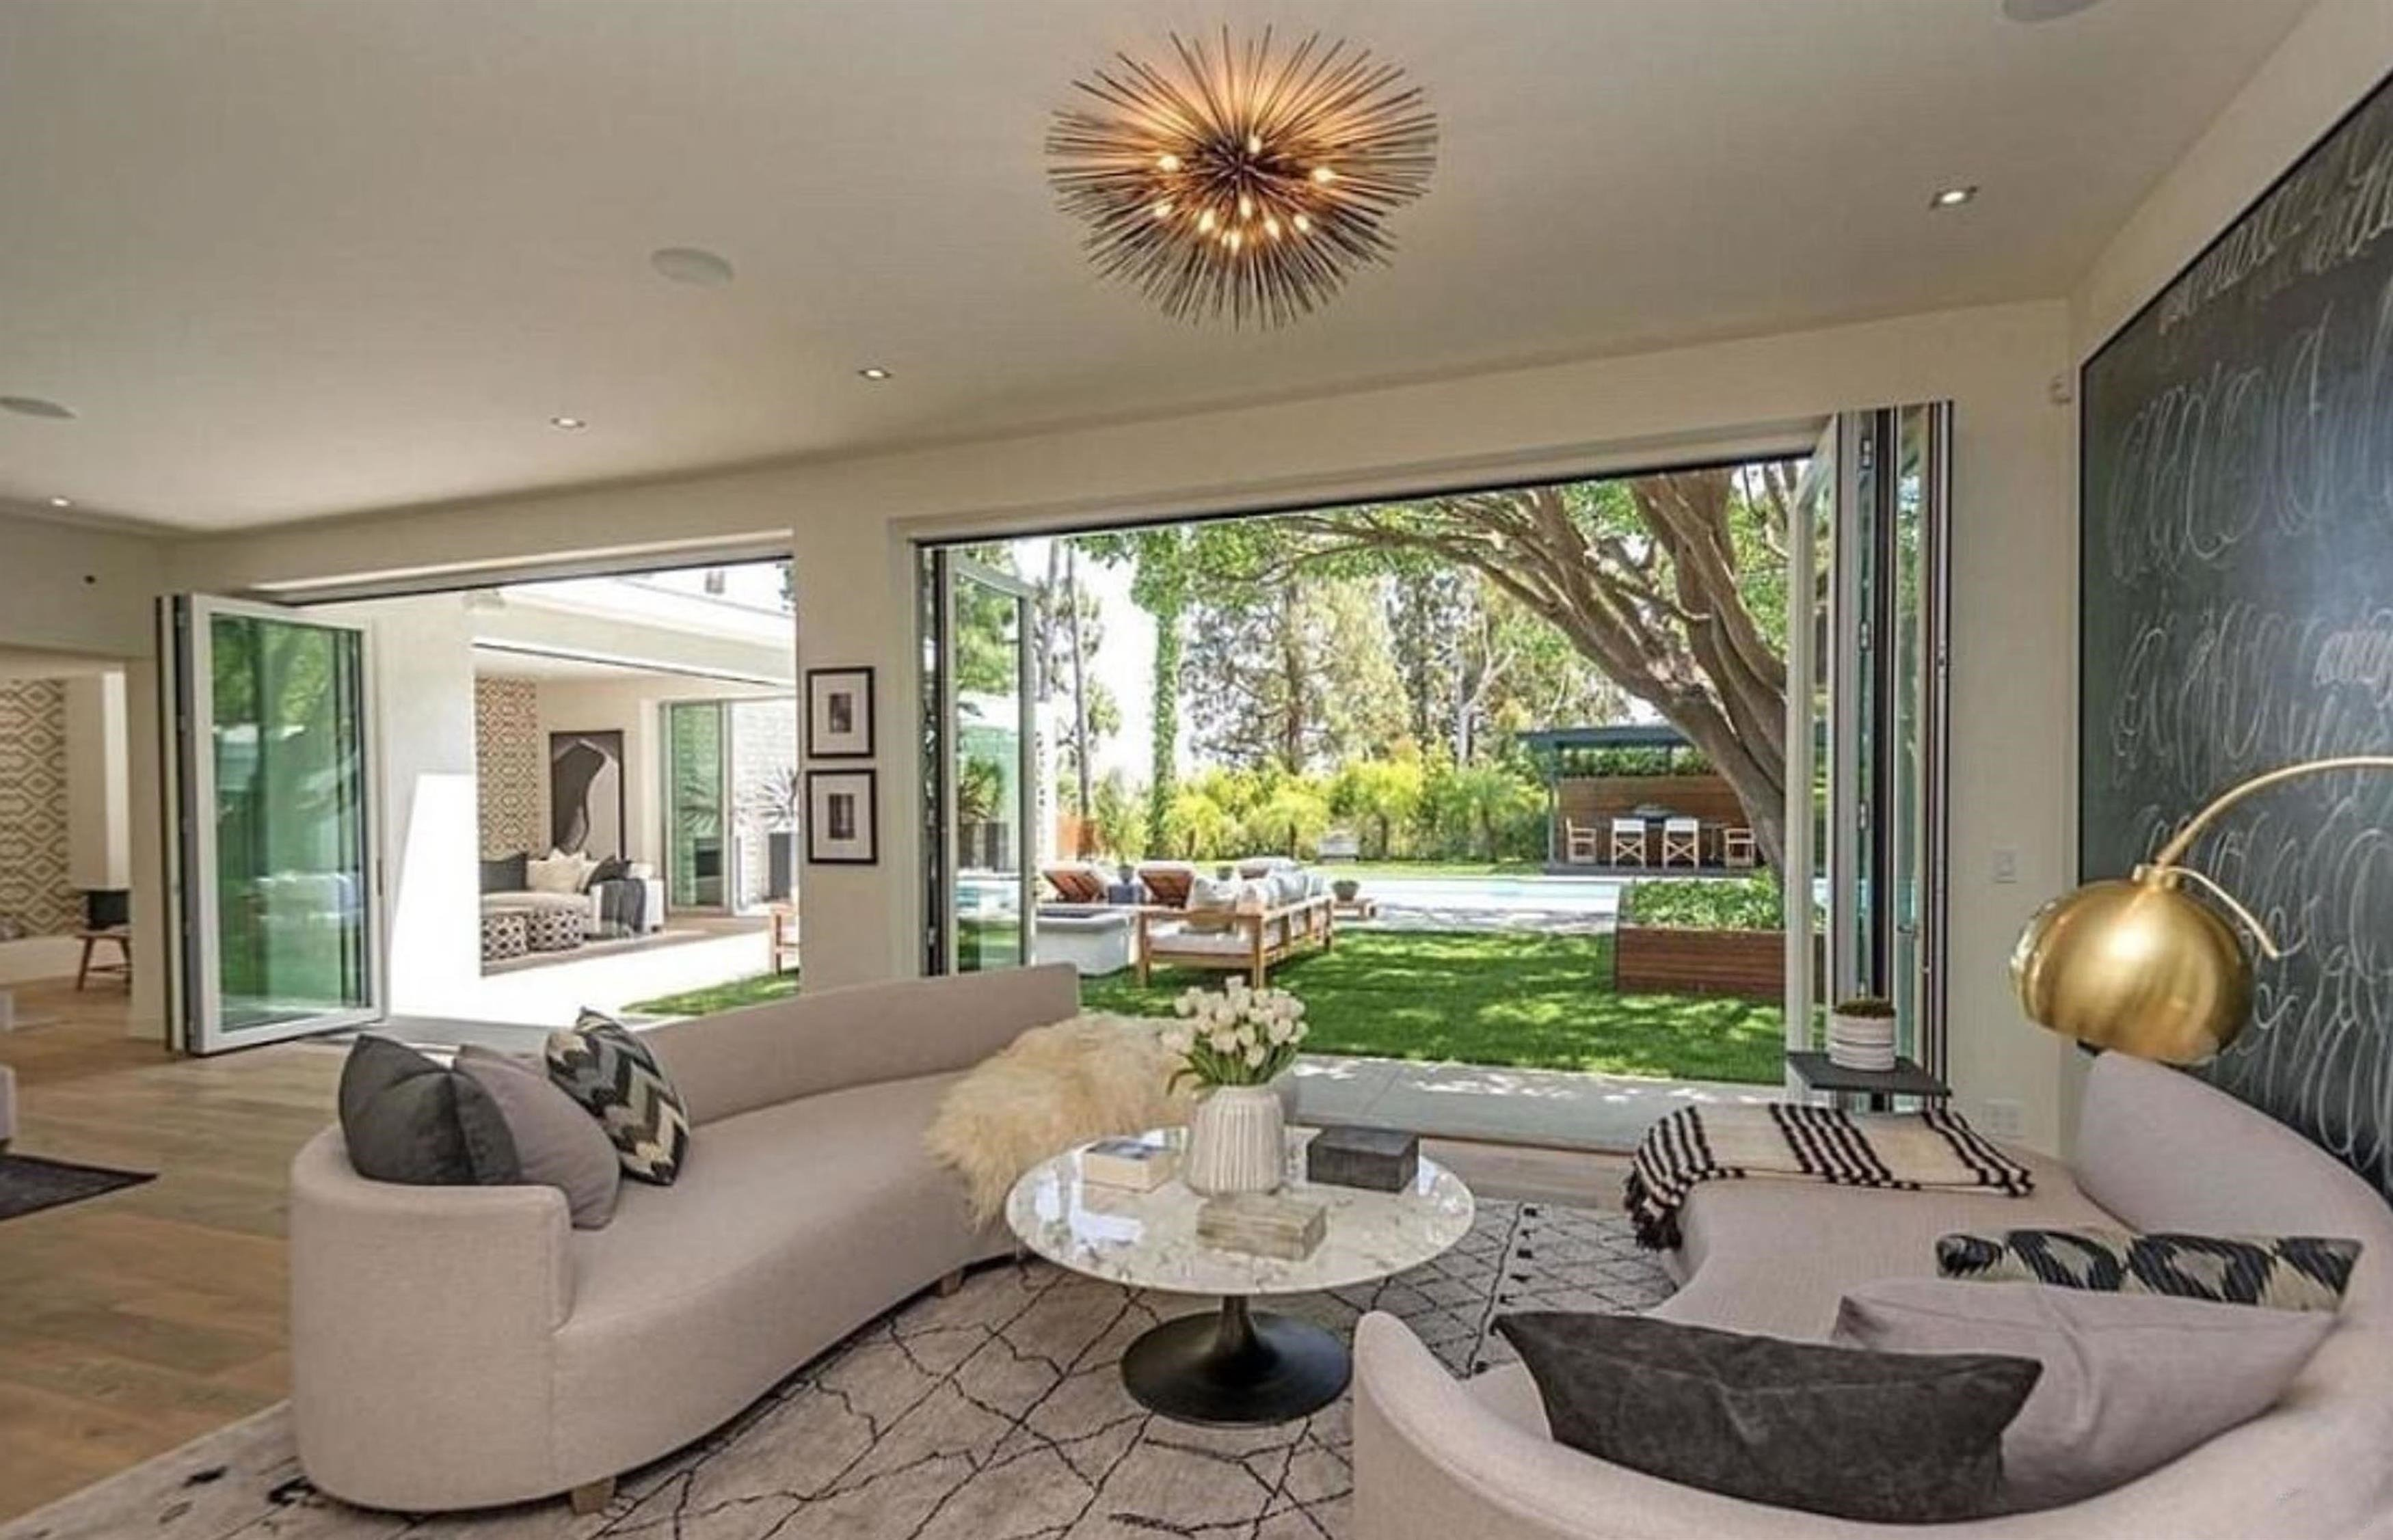 ** RIGHTS: WORLDWIDE EXCEPT IN UNITED STATES ** Los Angeles, CA  - Cindy Crawford and Randy Gerber splash out  million on new Beverly Hills home. The Hollywood couple put their luxury Malibu abode on the market in November 2016 for a cool million - and now they have swapped their seaside home for a jaw-dropping pad in Beverly Hills. According to US reports, they purchased the one-storey contemporary home  in the idyllic 90210 zip code for million. The property is located in trhe neighbourhood of Trousdale Estates and was originally listed for an eye-water .75million. The deal reportedly closed earlier this week with the dynamic couple purchasing the home from OneRepublic singer Ryan Tedder - who has worked with U2, Beyonce, Adele and Ed Sheeran. Cindy and Rande's four bedroom property is equipped with an impressive outdoor area and pool and a fire pit. The modern home boasts an open plan living area and kitchen which flows perfectly into their manicured lawns and incredible view over the city with the help of folding glass doors. Flooding  Pictured: Cindy Crawford, Randy Gerber  BACKGRID UK 14 SEPTEMBER 2017, Image: 349341315, License: Rights-managed, Restrictions: , Model Release: no, Credit line: Profimedia, Xposurephotos